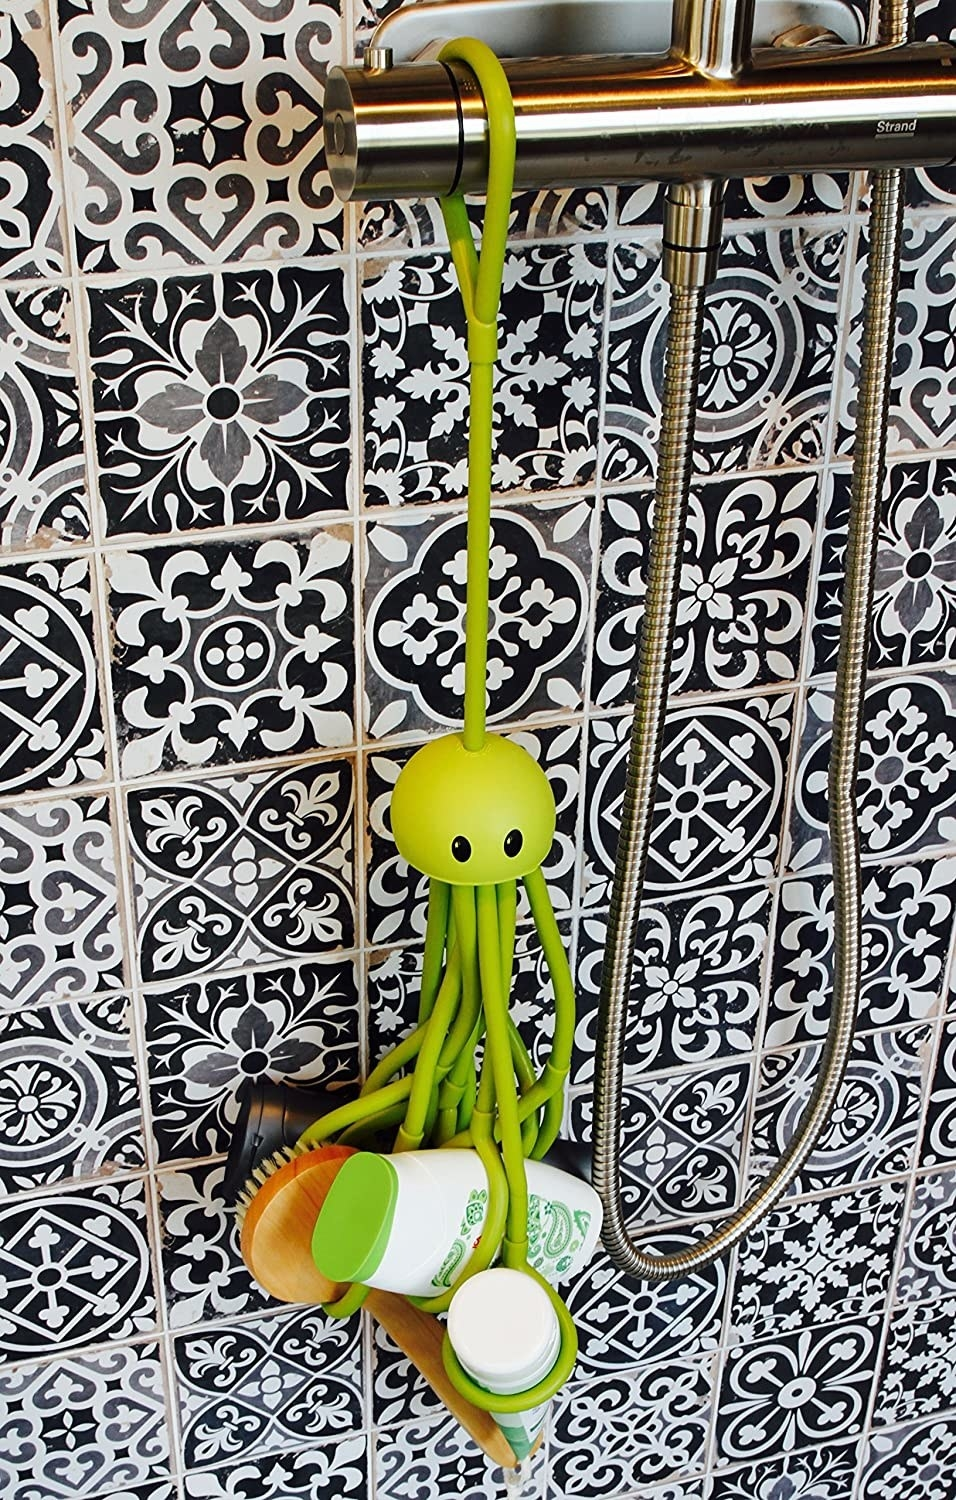 A hanging rubber octopus with several tentacles with round grippy ends. It is holding a brush, conditioner, shampoo, cleanser, and has room for more products.